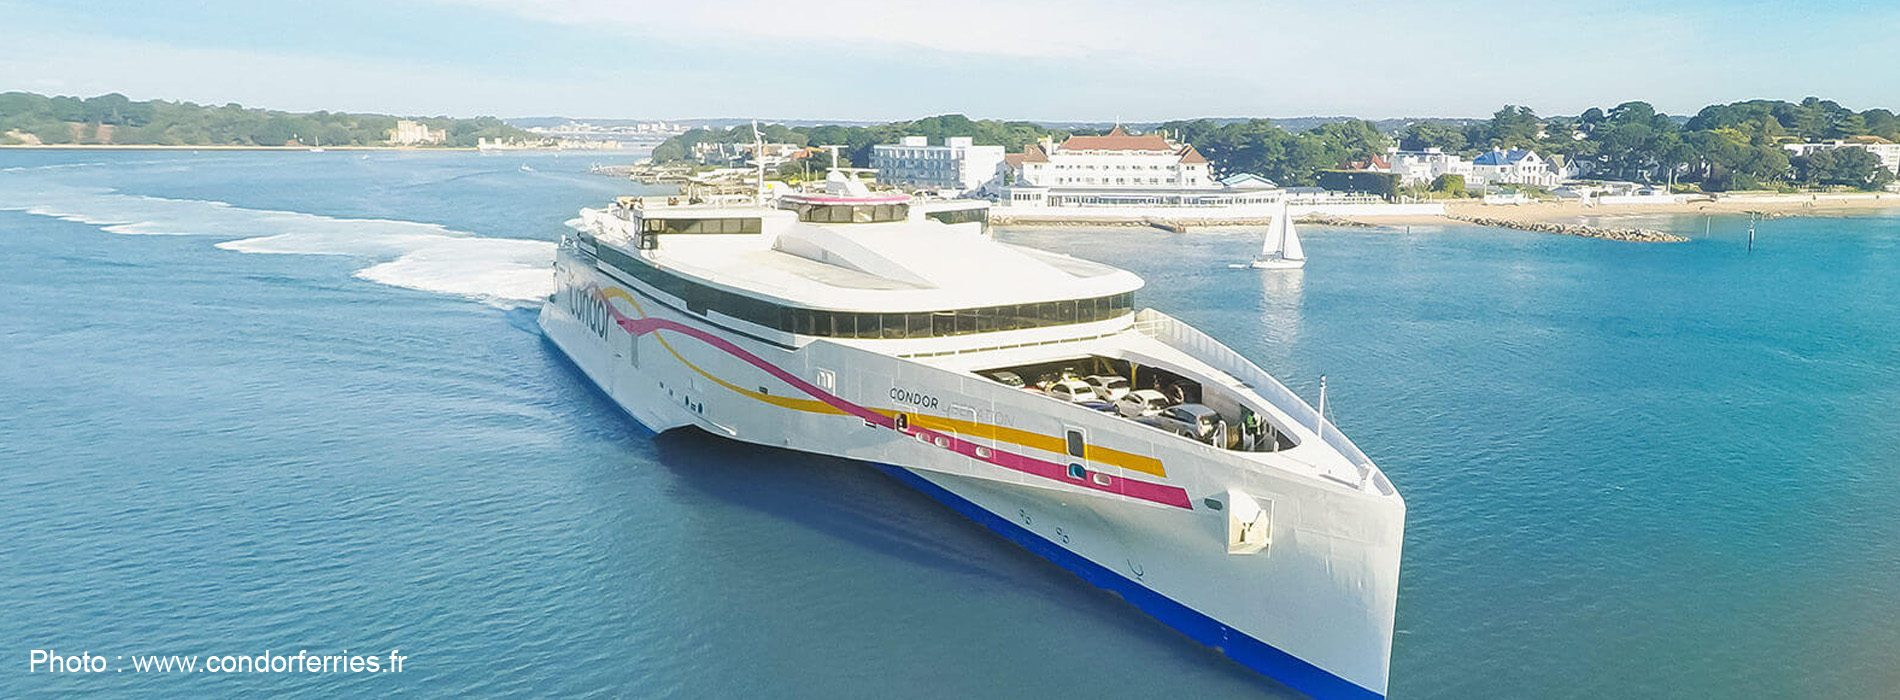 Les Condor Ferries abordés par Brittany Ferries